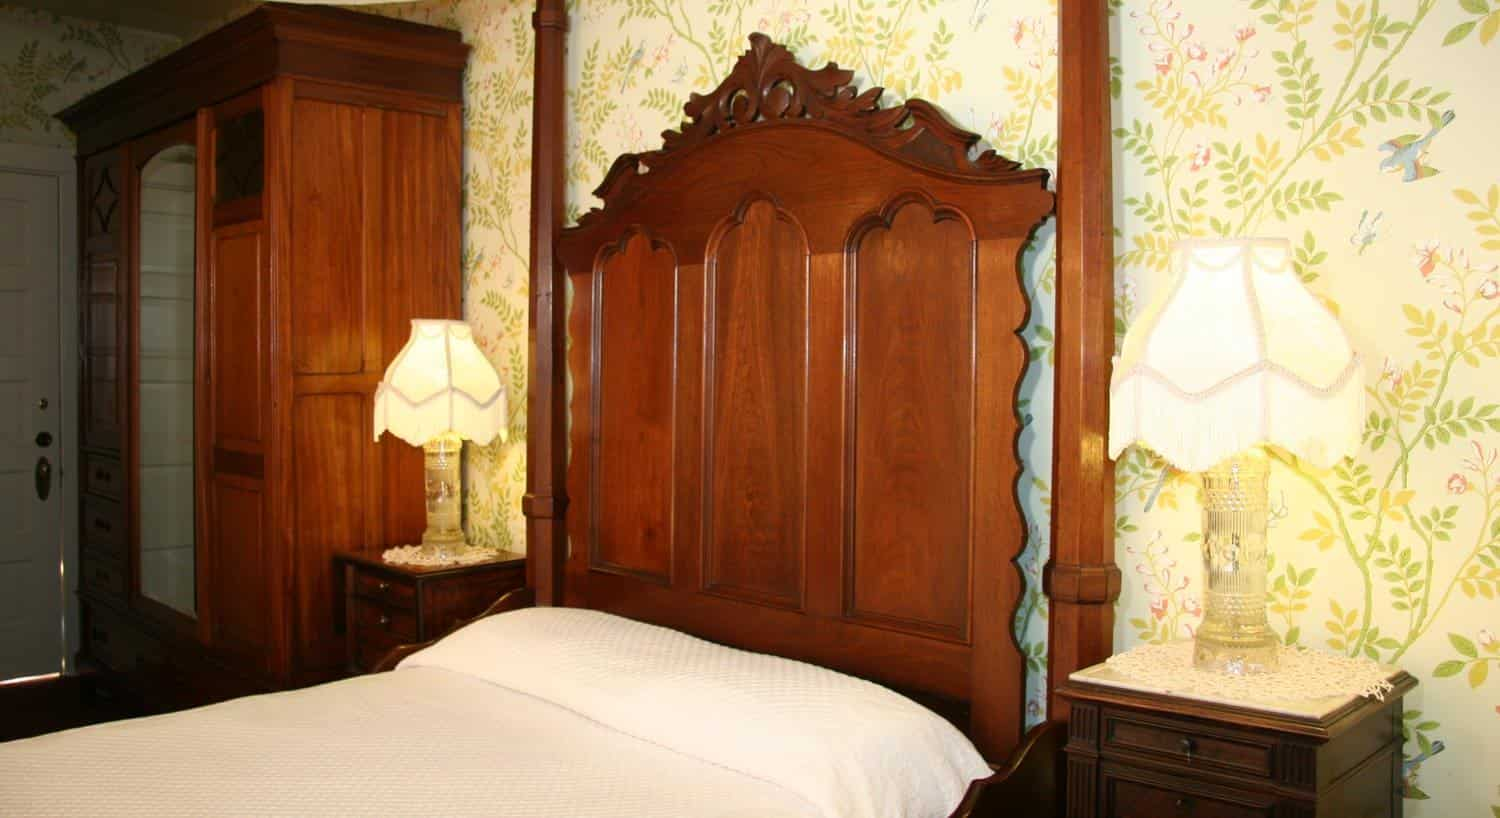 Garden guest room with leafy printed wallpaper, tall carved headboard, two nightstands and mirrored armoire